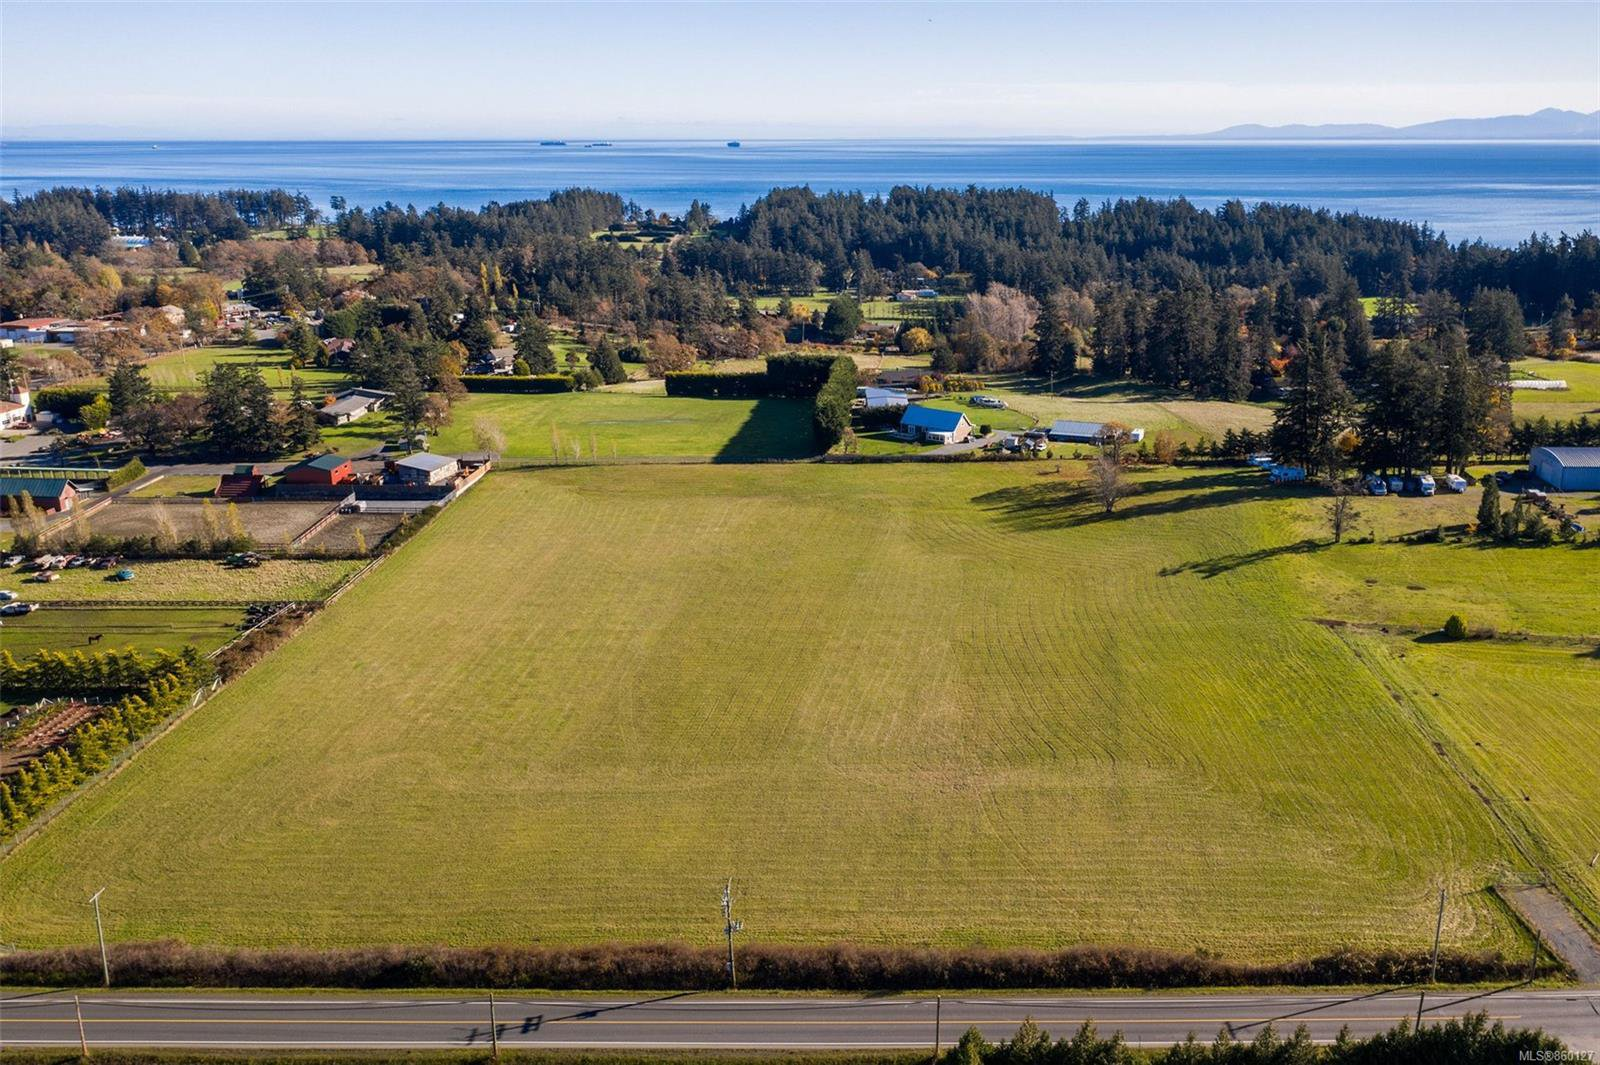 Main Photo: Lot 3 Rocky Point Rd in : Me William Head Land for sale (Metchosin)  : MLS®# 860127